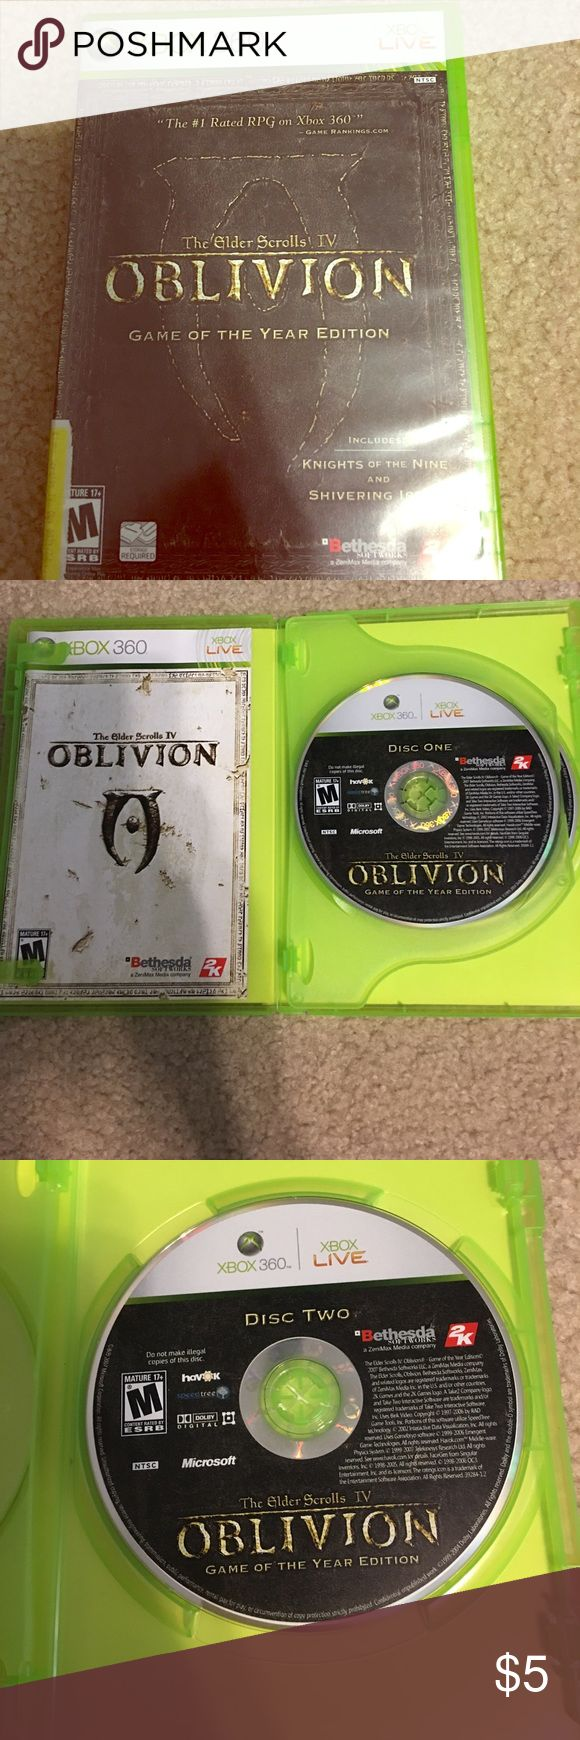 Xbox 360 game Oblivion The Elder Scrolls 4 Xbox 360 game Oblivion The Elder Scrolls IV. #1 rated RPG on Xbox 360. Pre-owned. Comes with fold out map. xbox Other